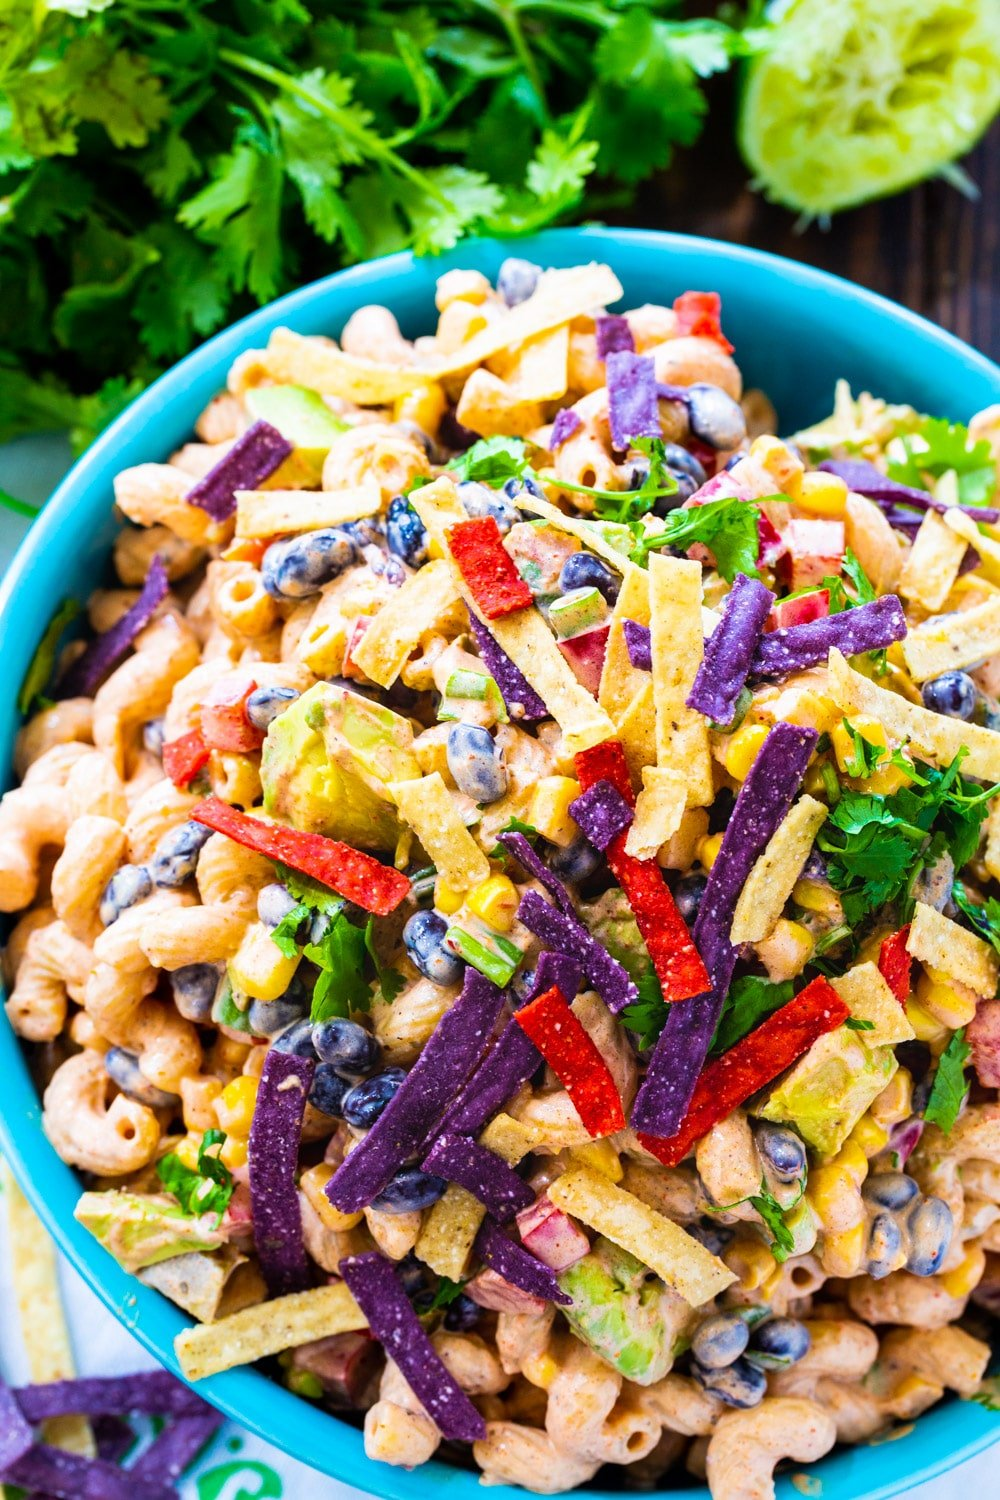 Pasta salad in a blue bowl with bunch of cilantro beside it.